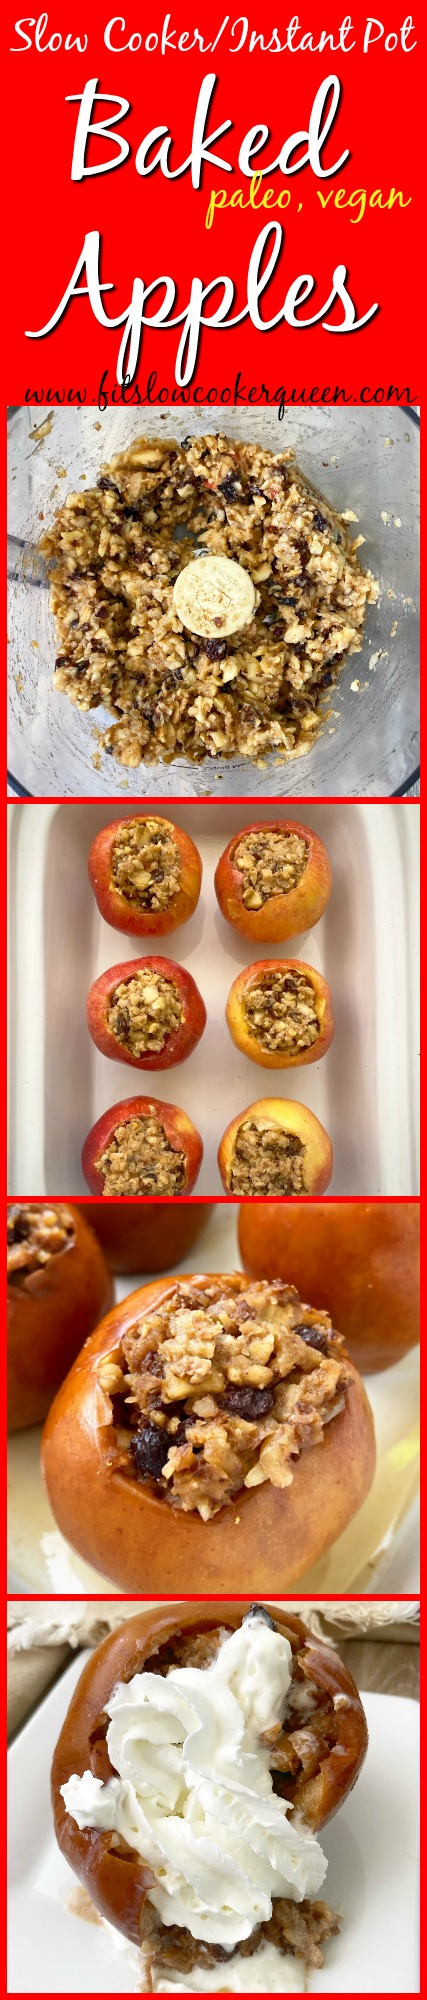 another pinterest pin for Slow Cooker_Instant Pot Baked Apples (Paleo, Vegan)